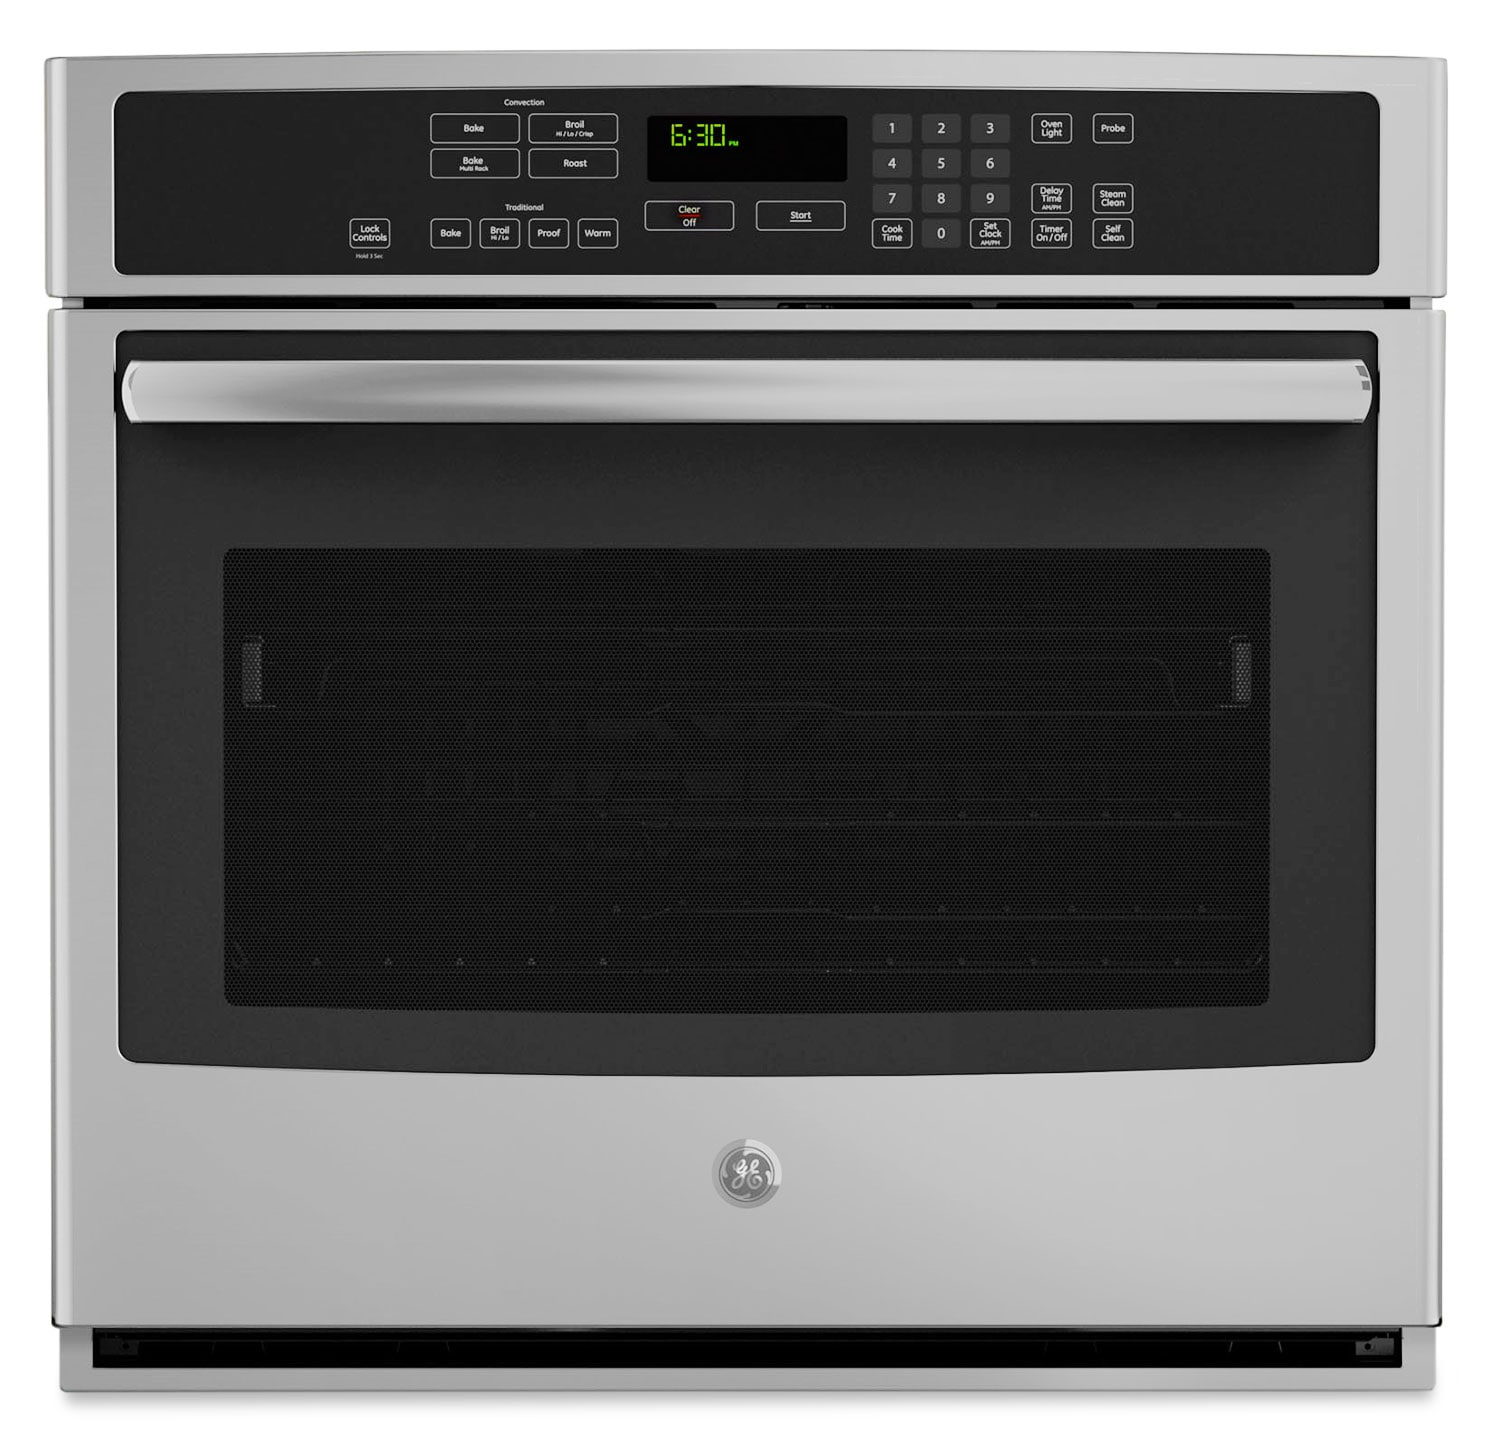 Cooking Products - GE 5.0 Cu. Ft. Electric Single Wall Oven – Stainless Steel